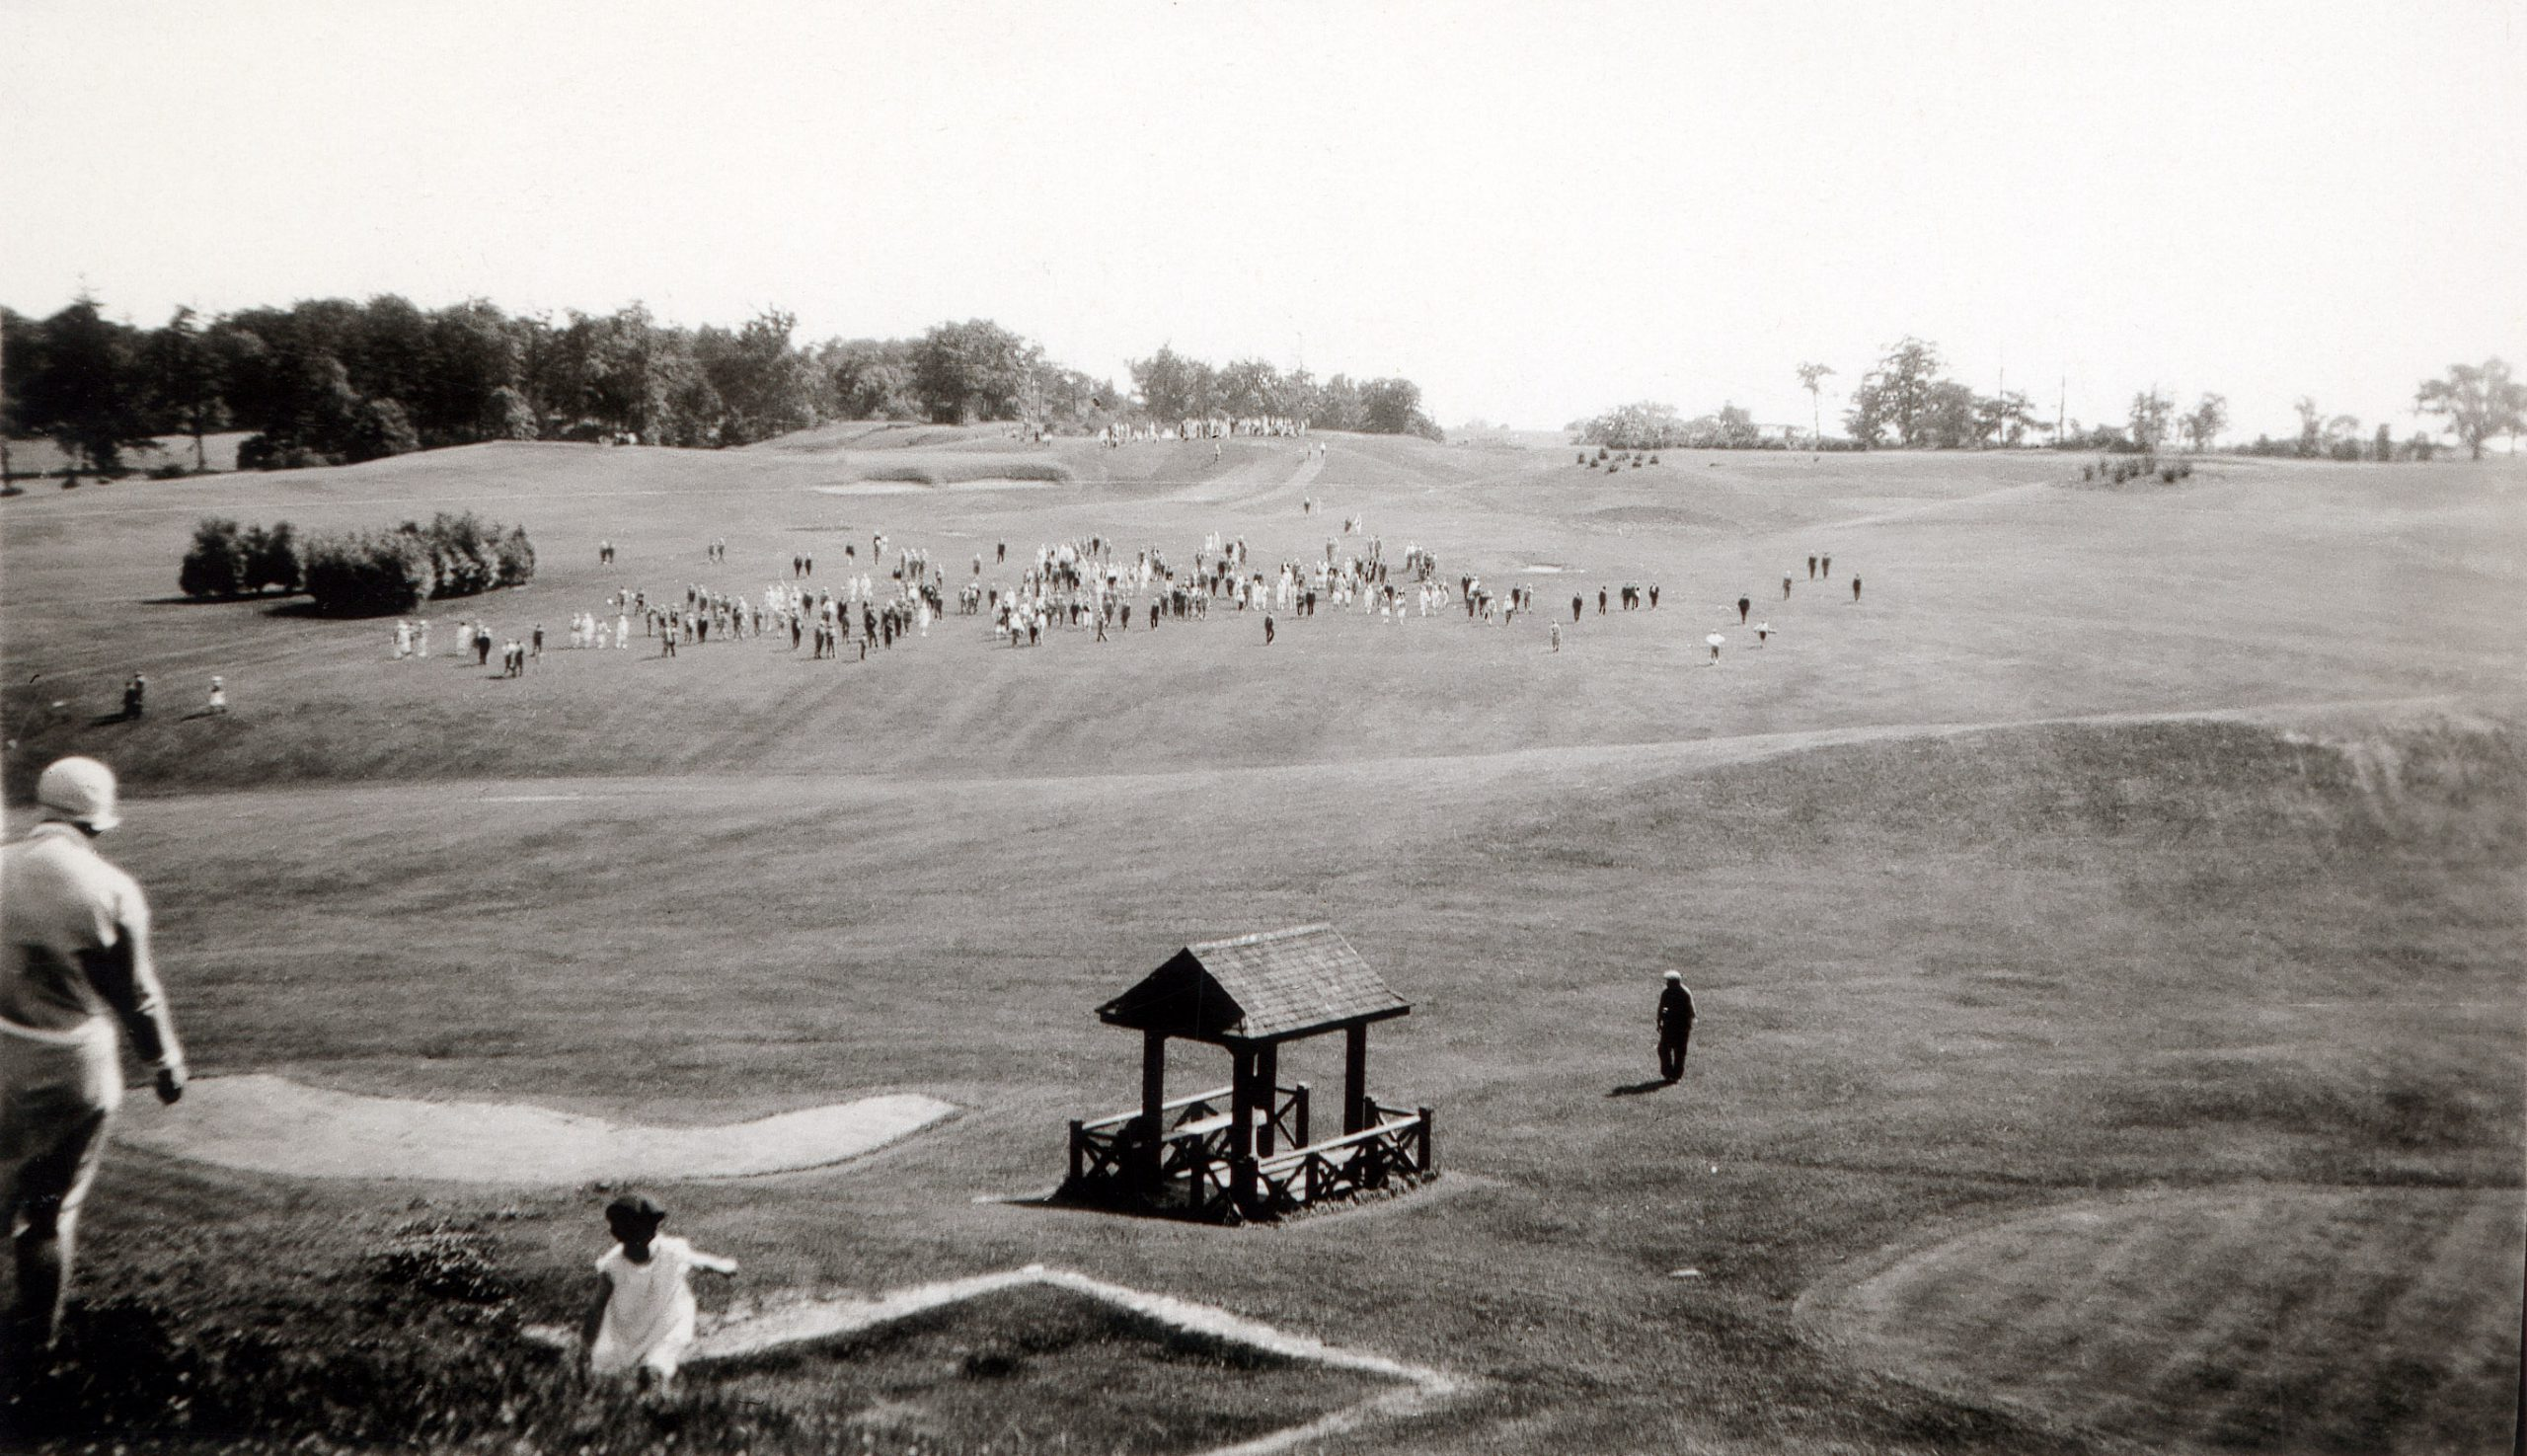 The 9th hole at the 1919 Canadian Open at Hamilton Golf and Country Club.